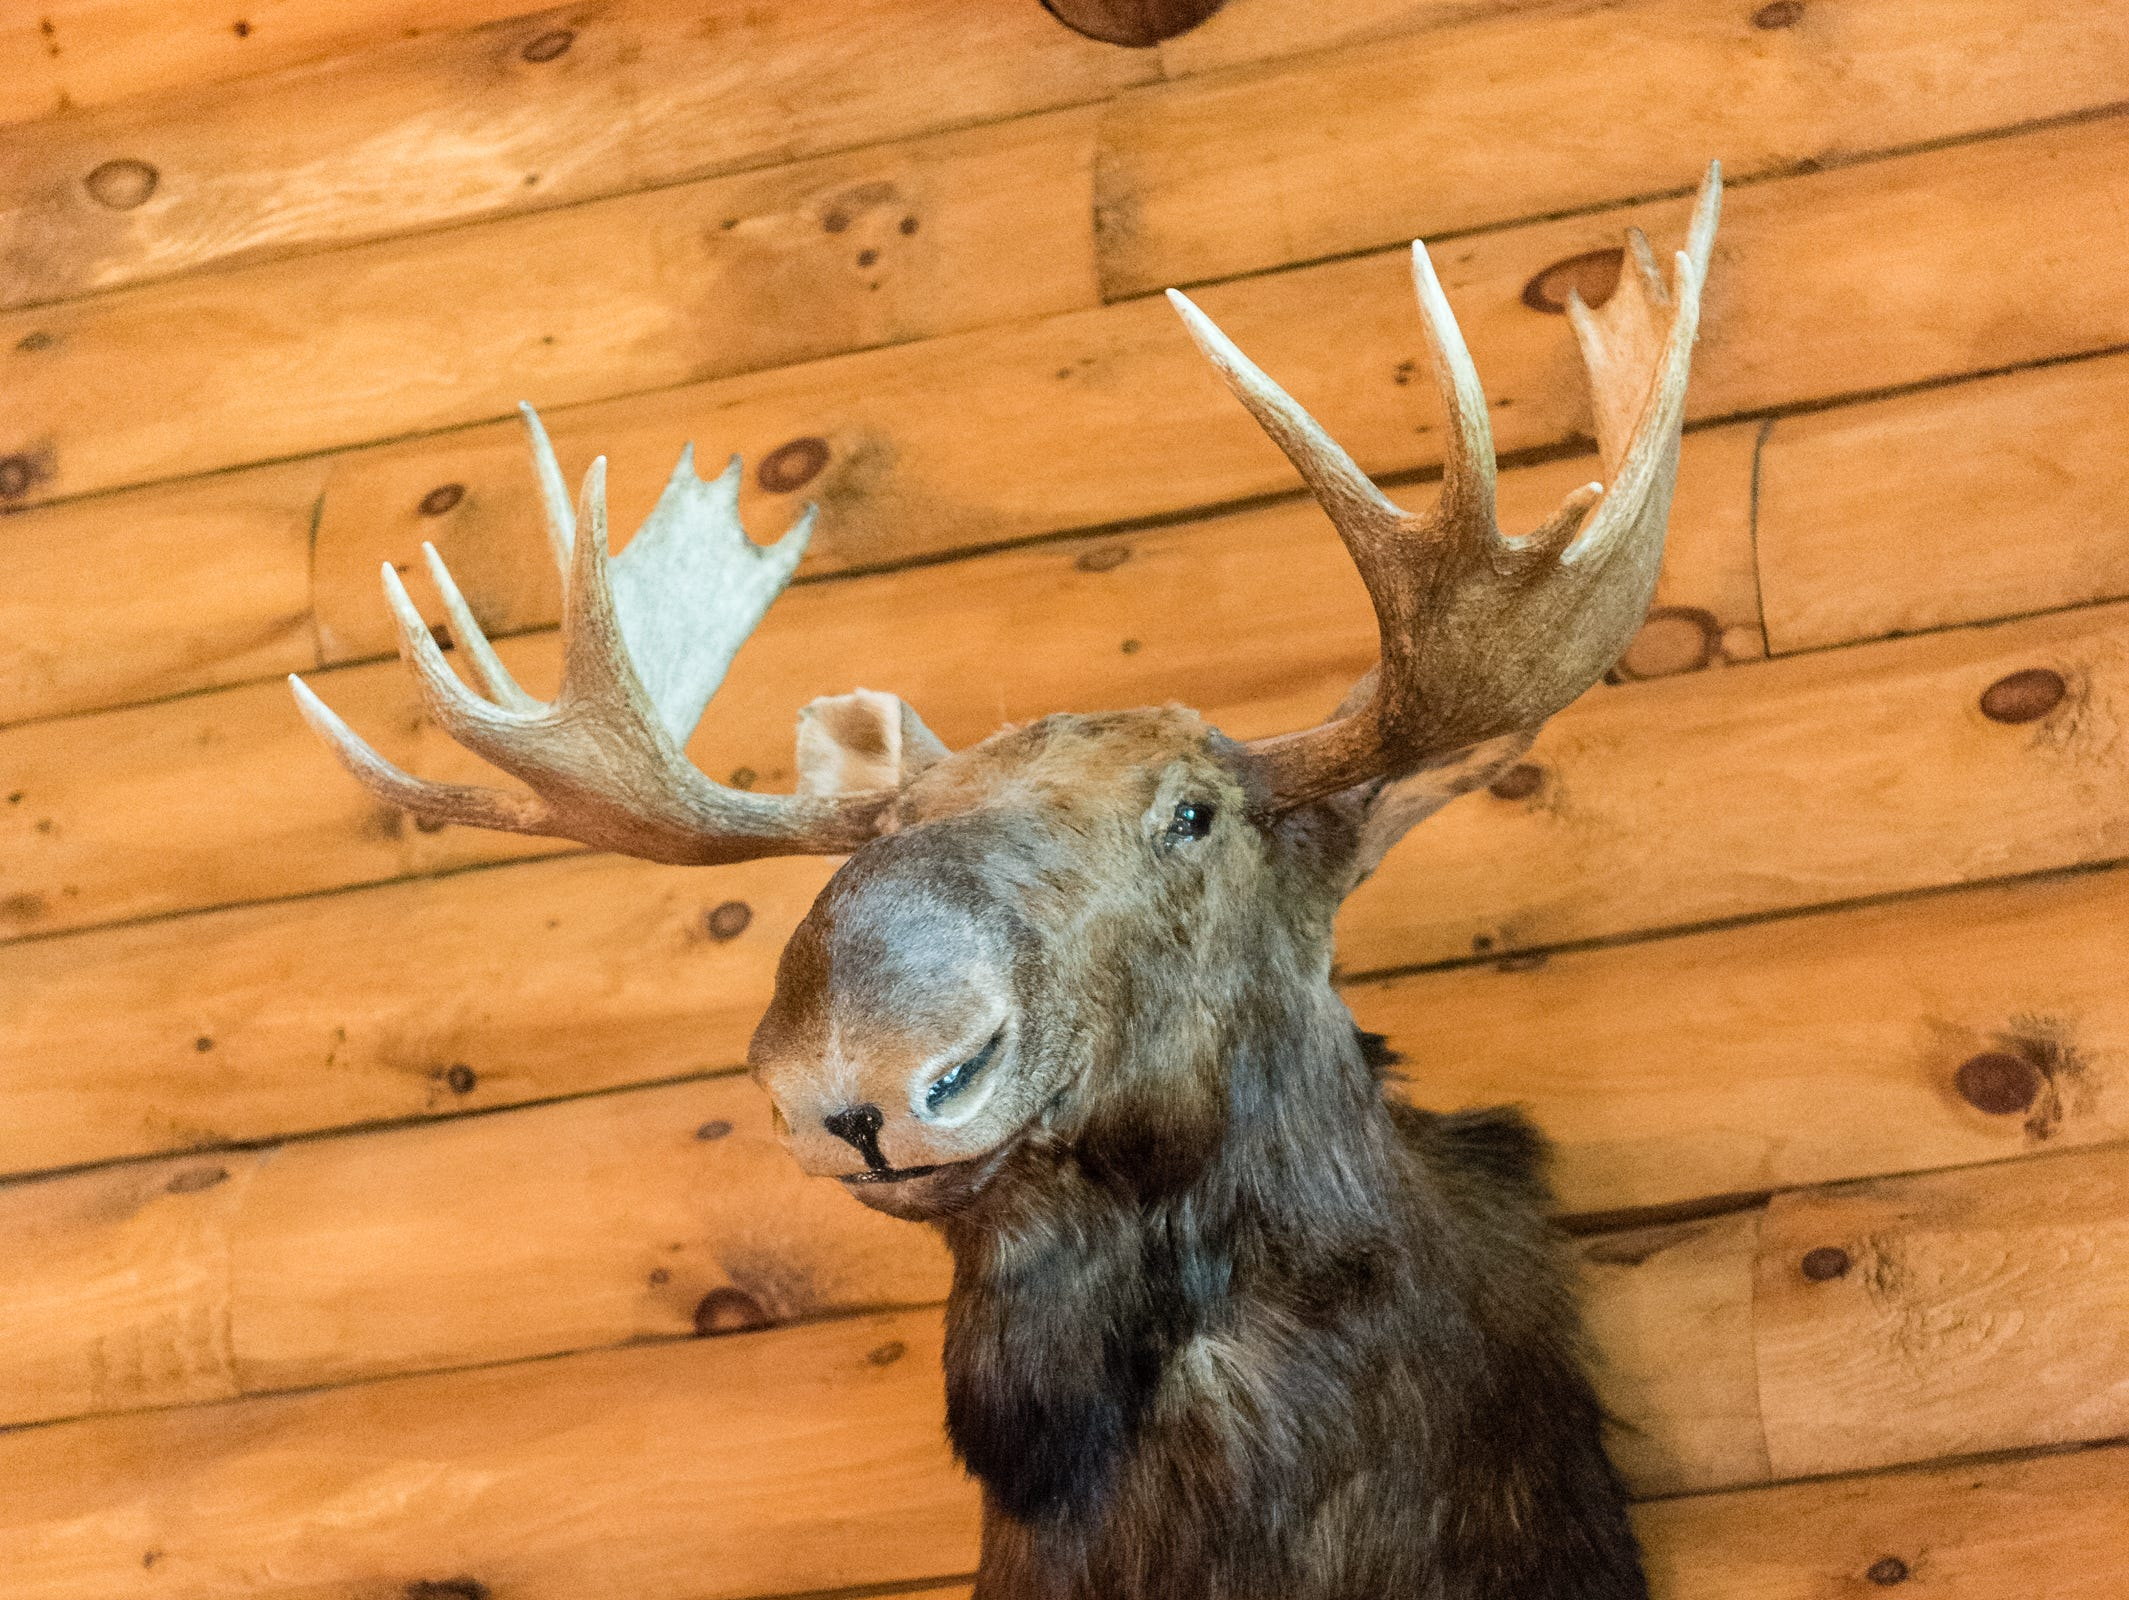 A mounted moose head in Dan and Belle Fangmeyer's log cabin in Waynesville.